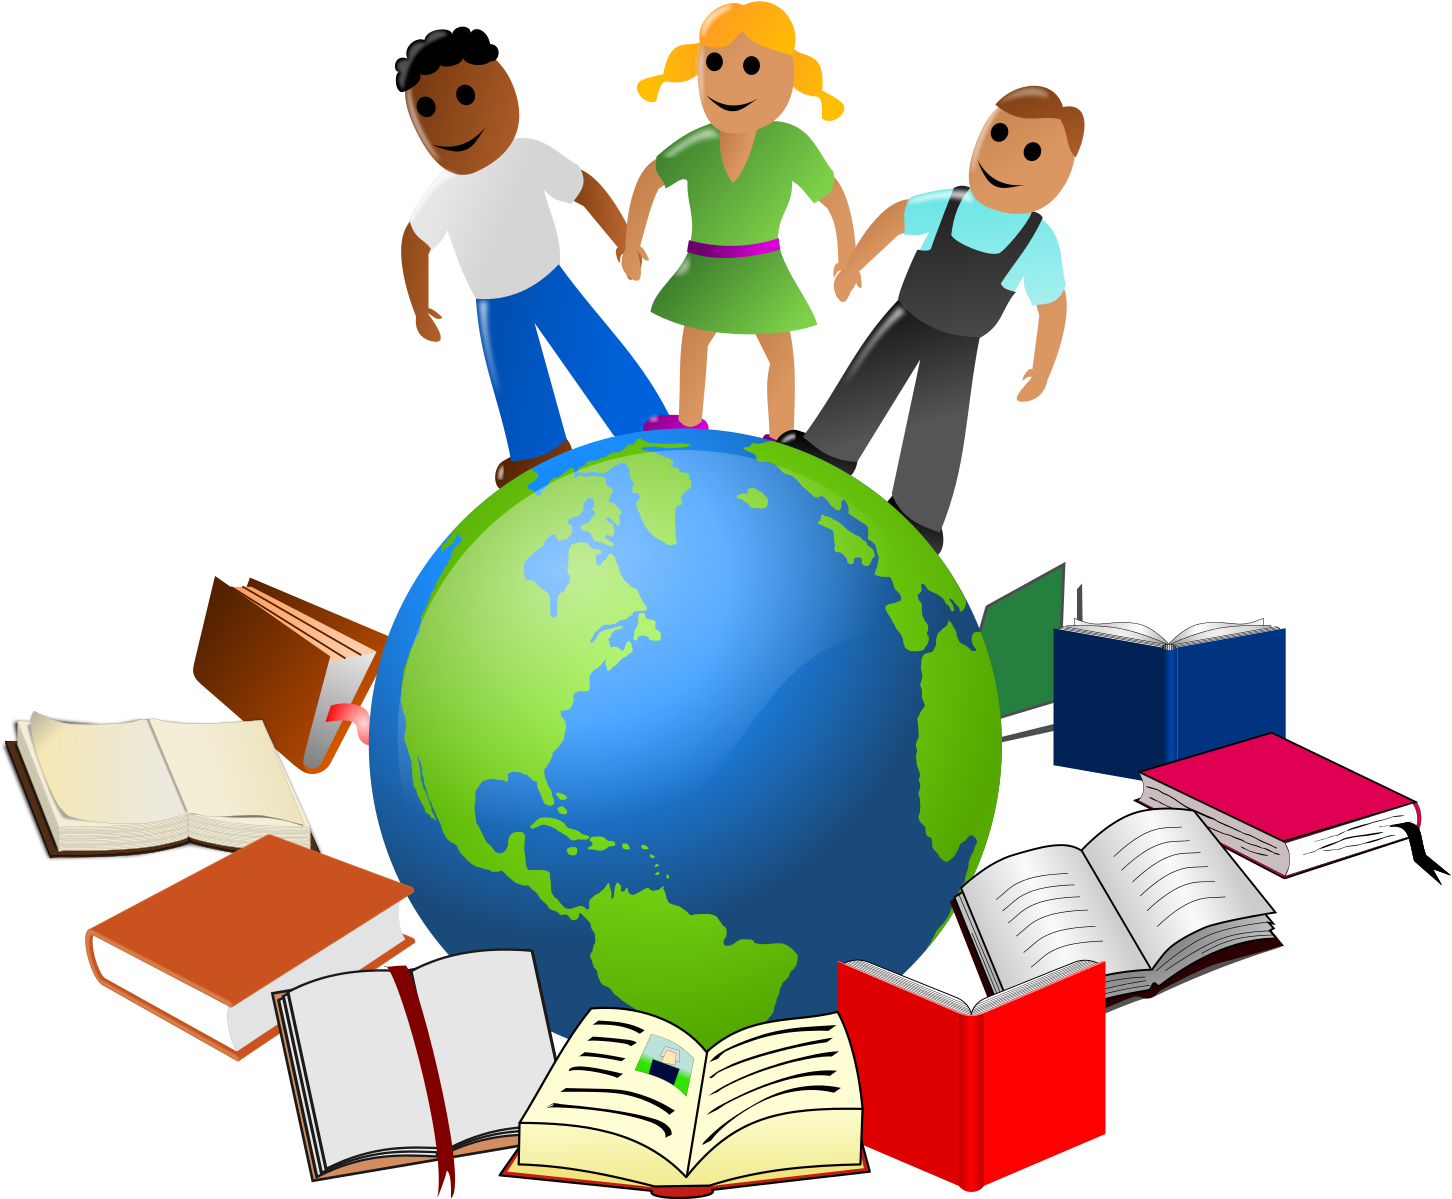 Clipart world global. Pushing the boundaries of